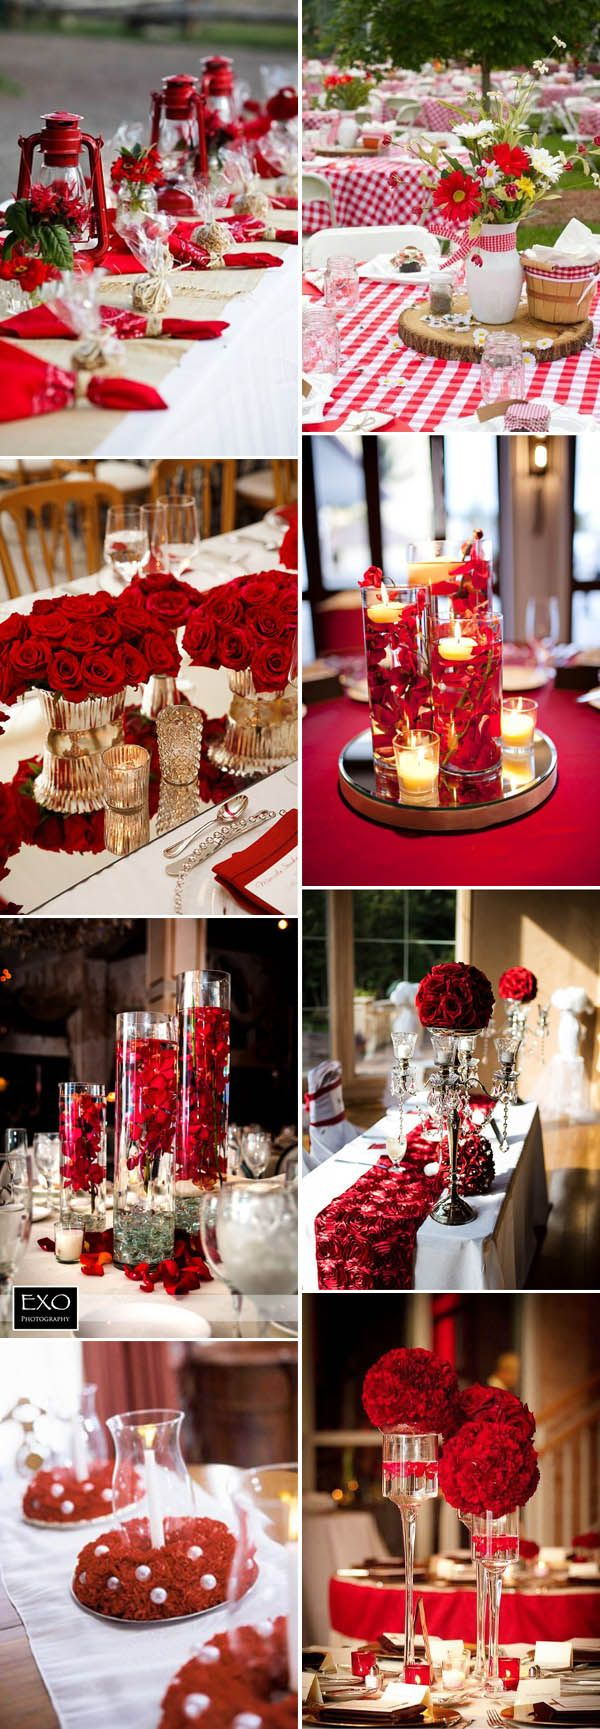 40 Inspirational Classic Red And White Wedding Ideas